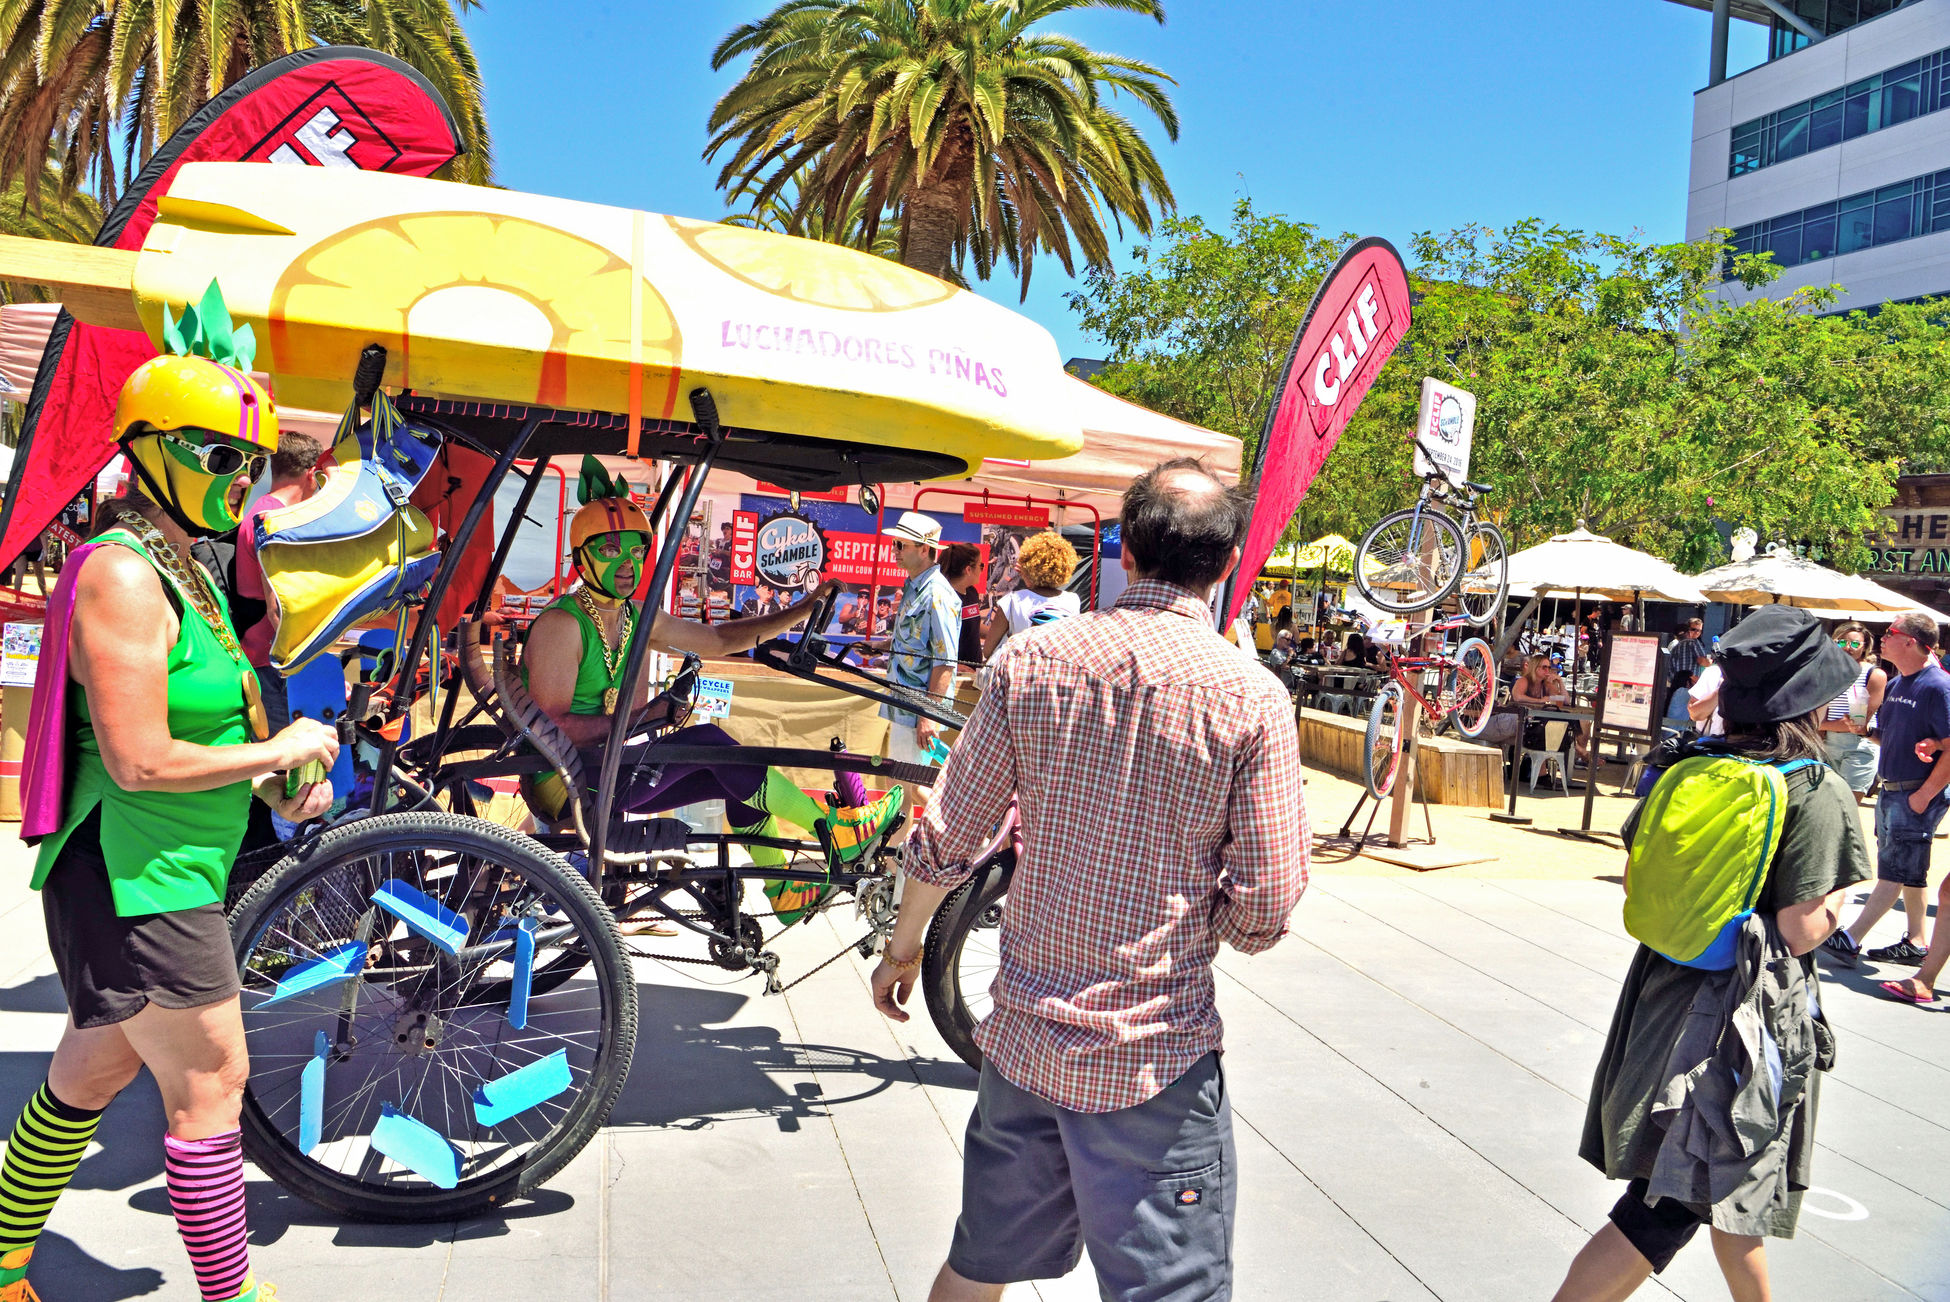 Bikes Of All Types 3 Peddle Fest @ Jack London Square Oakland, Ca. Festival Bicycles Bicycling Custom Bicycles Antique Bikes Kids Bikes Bikes Bikeporn Bicycle Heaven Have A Good Time Having Fun Having Fun With Photography Family Time